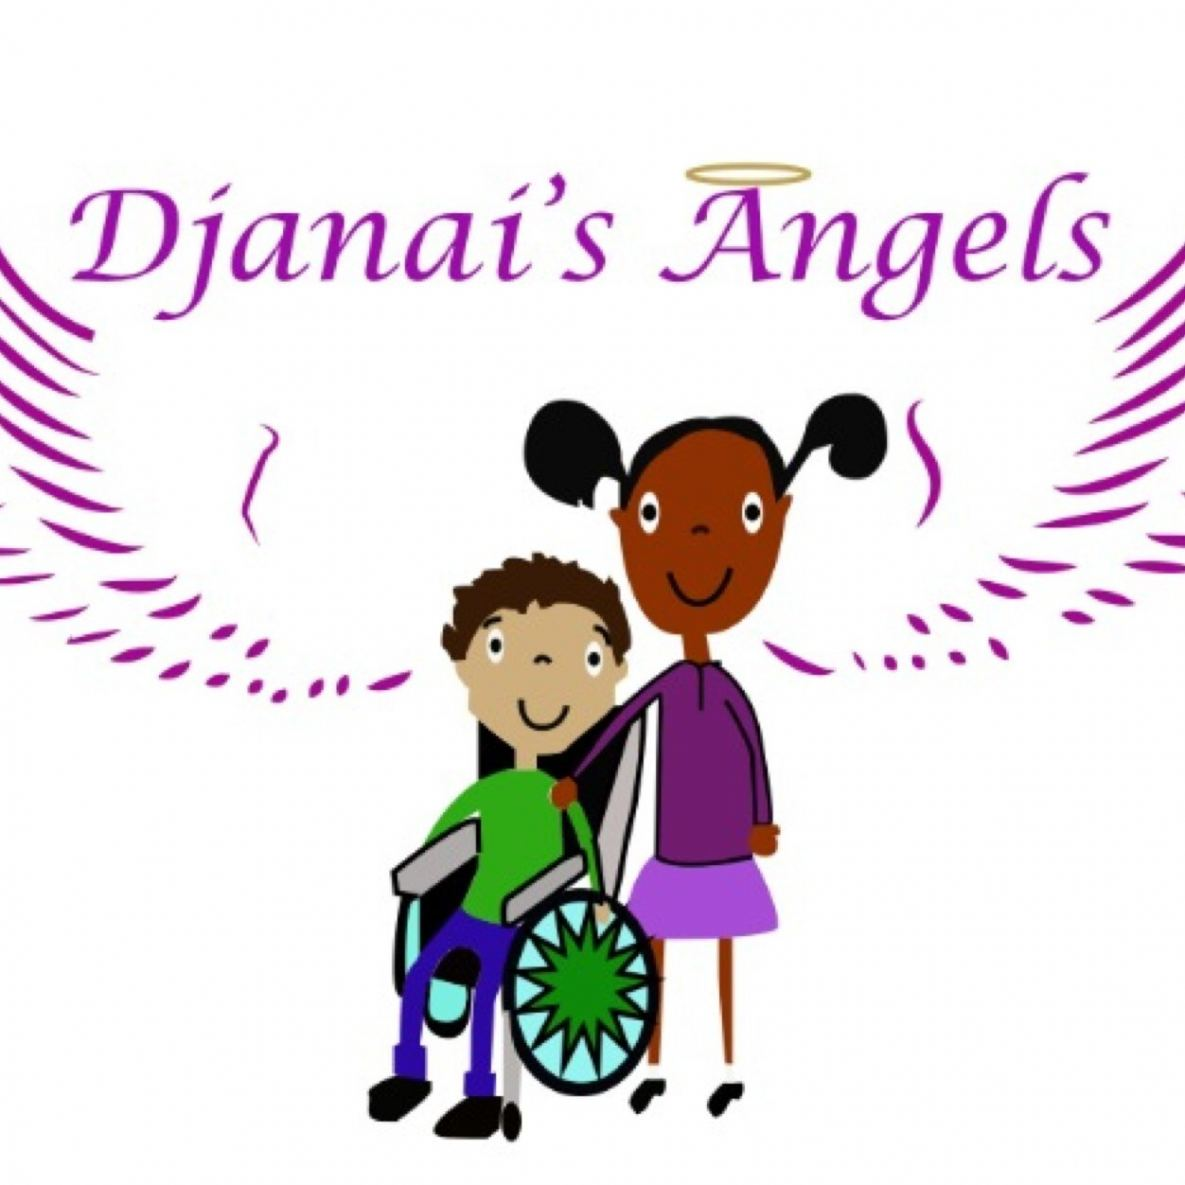 12295612-djanai-angels